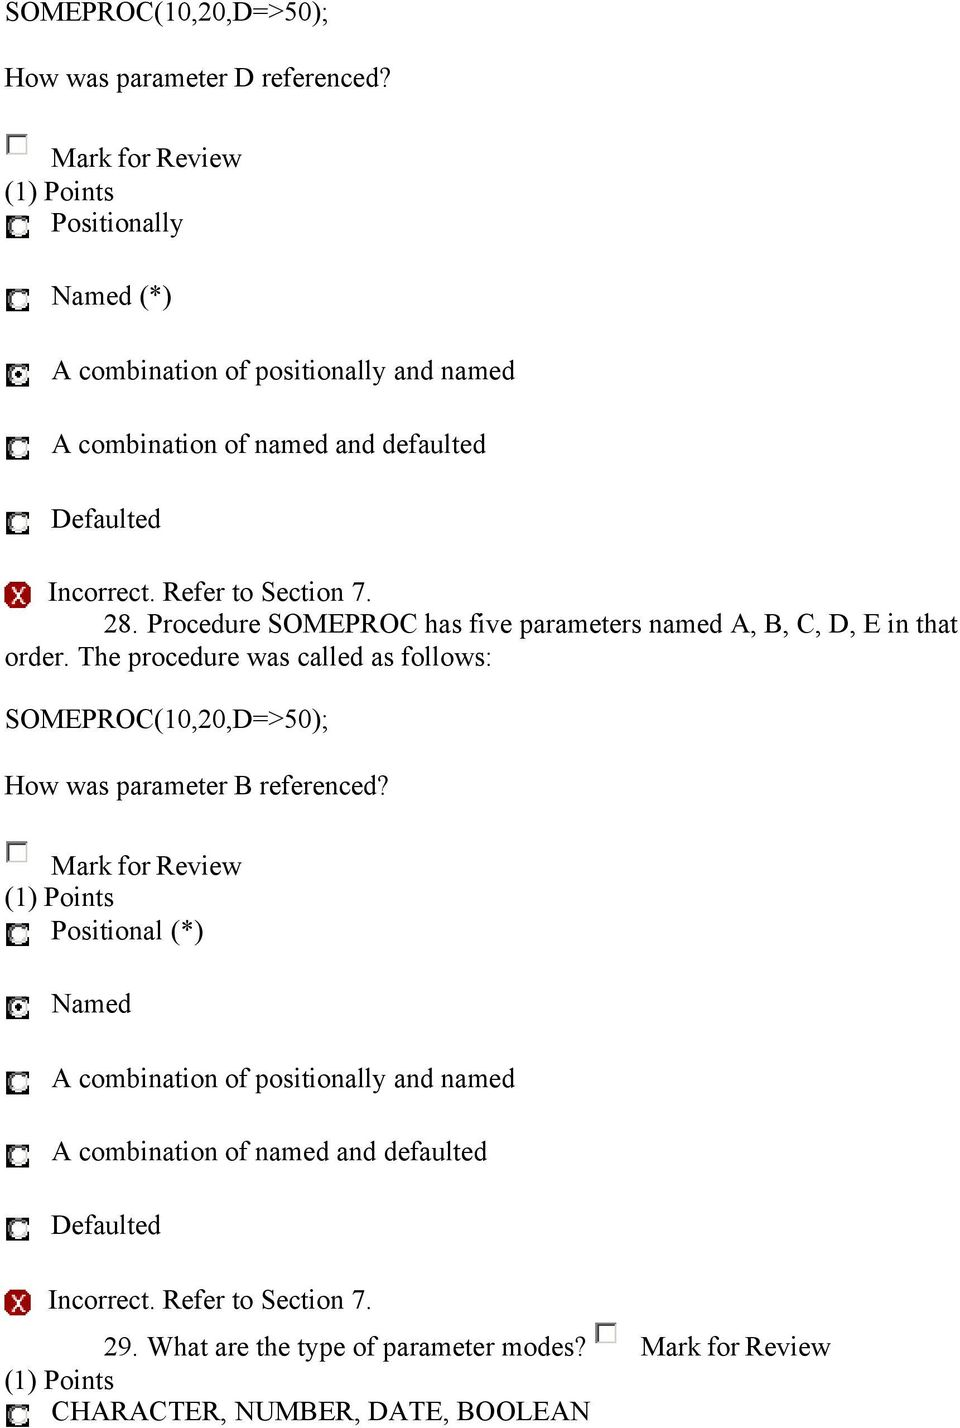 Procedure SOMEPROC has five parameters named A, B, C, D, E in that order.